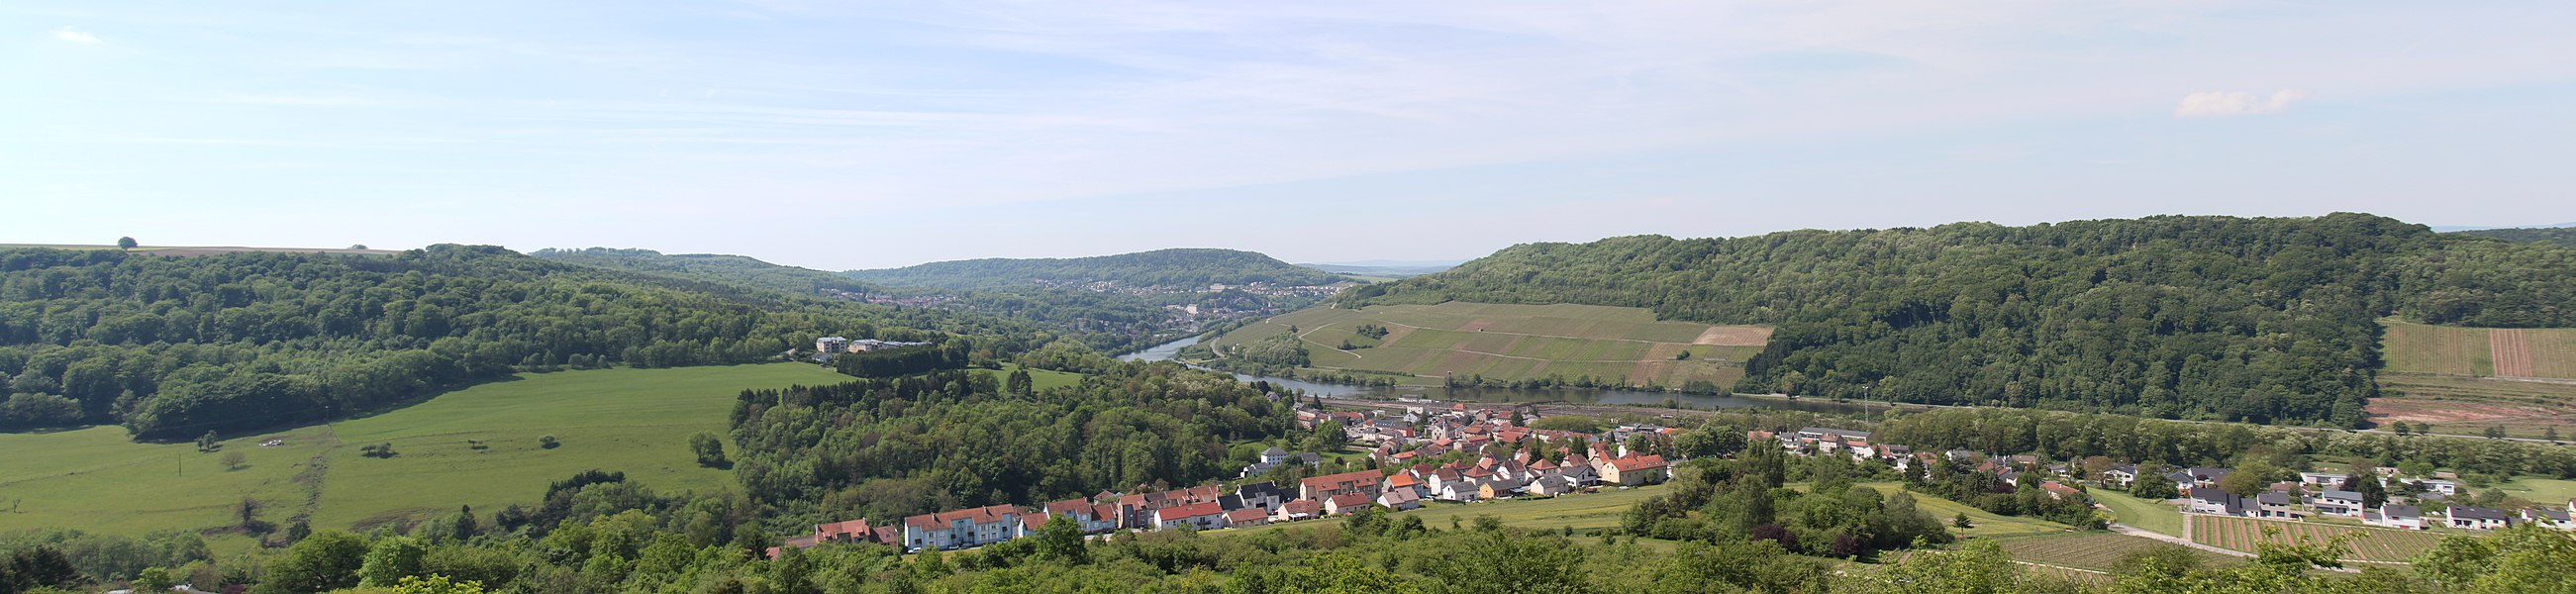 A view of Apach